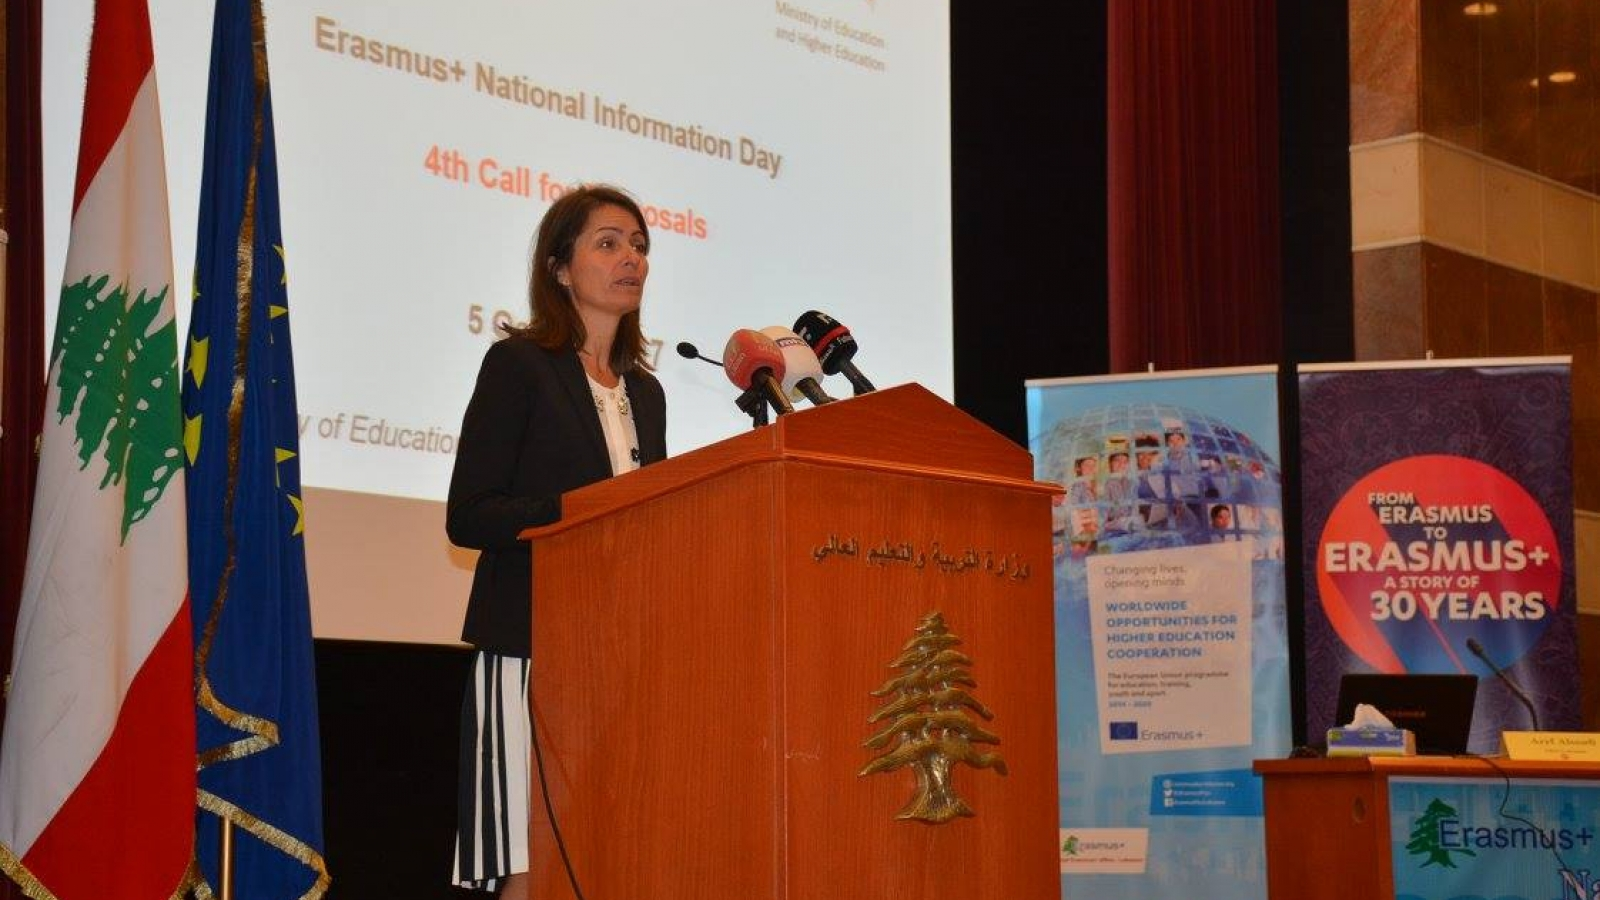 Erasmus annual Information Day in Lebanon